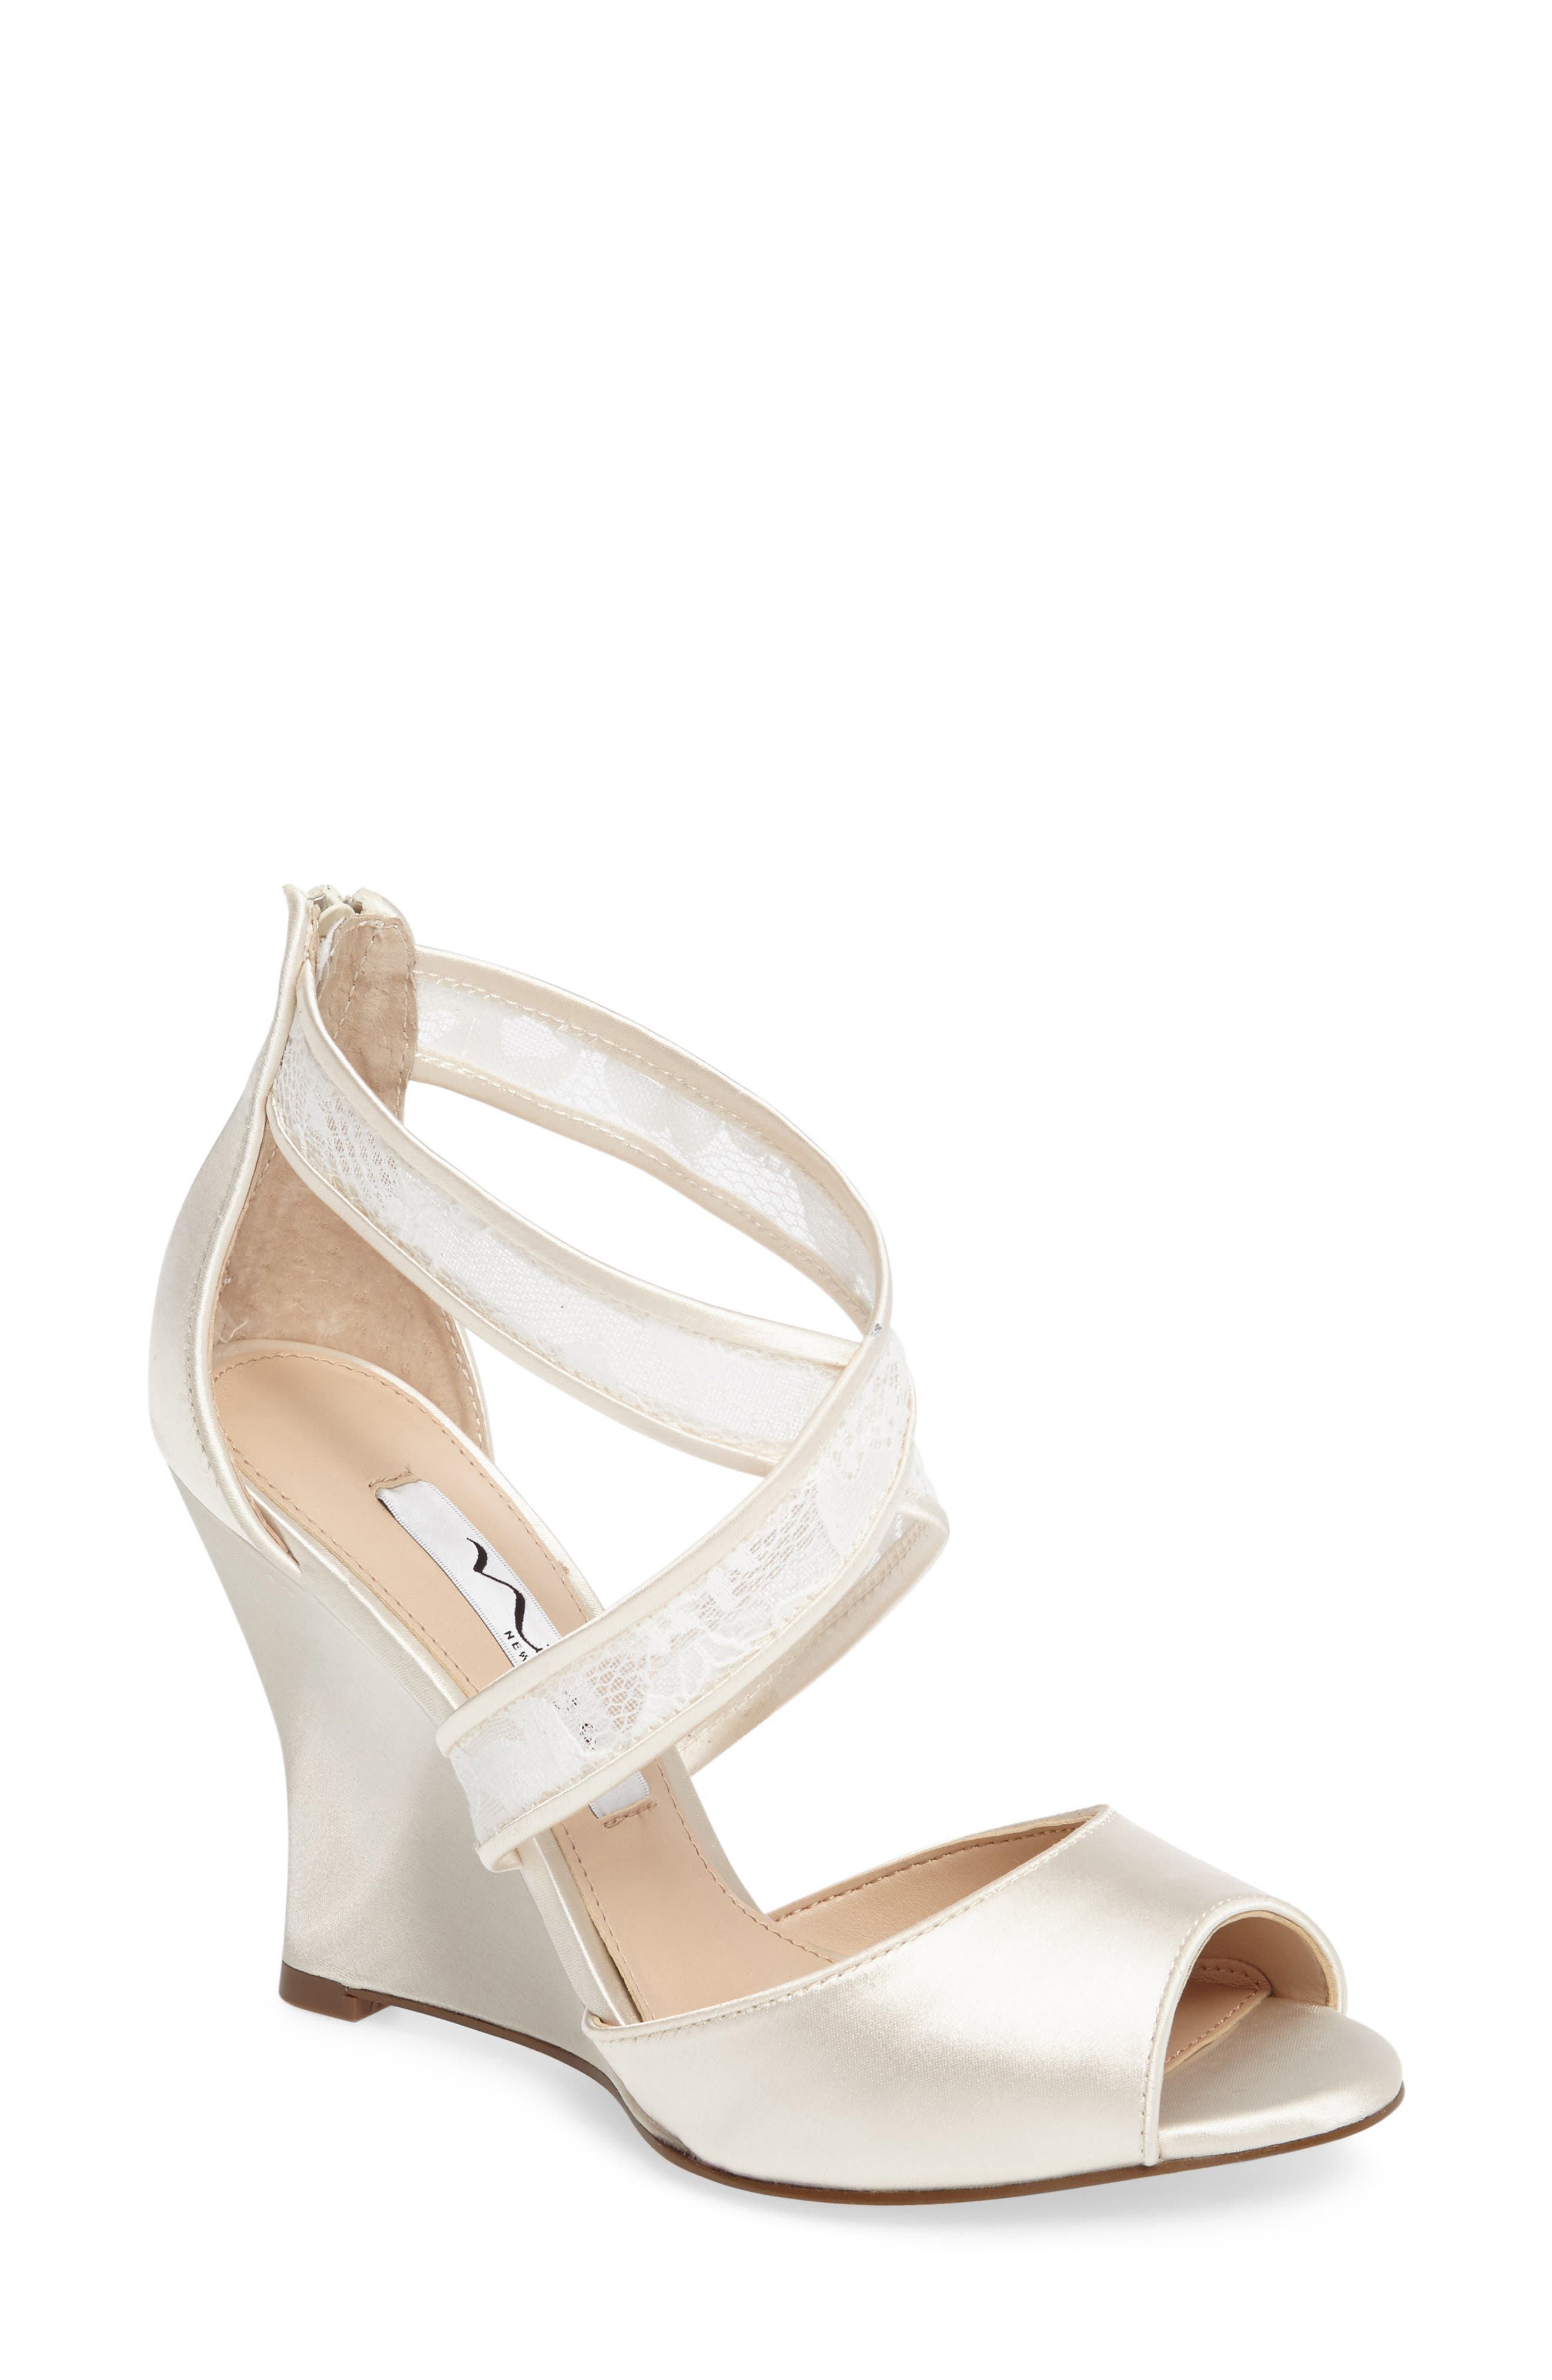 NINA Elyana Strappy Wedge Sandal, Main, color, IVORY SATIN